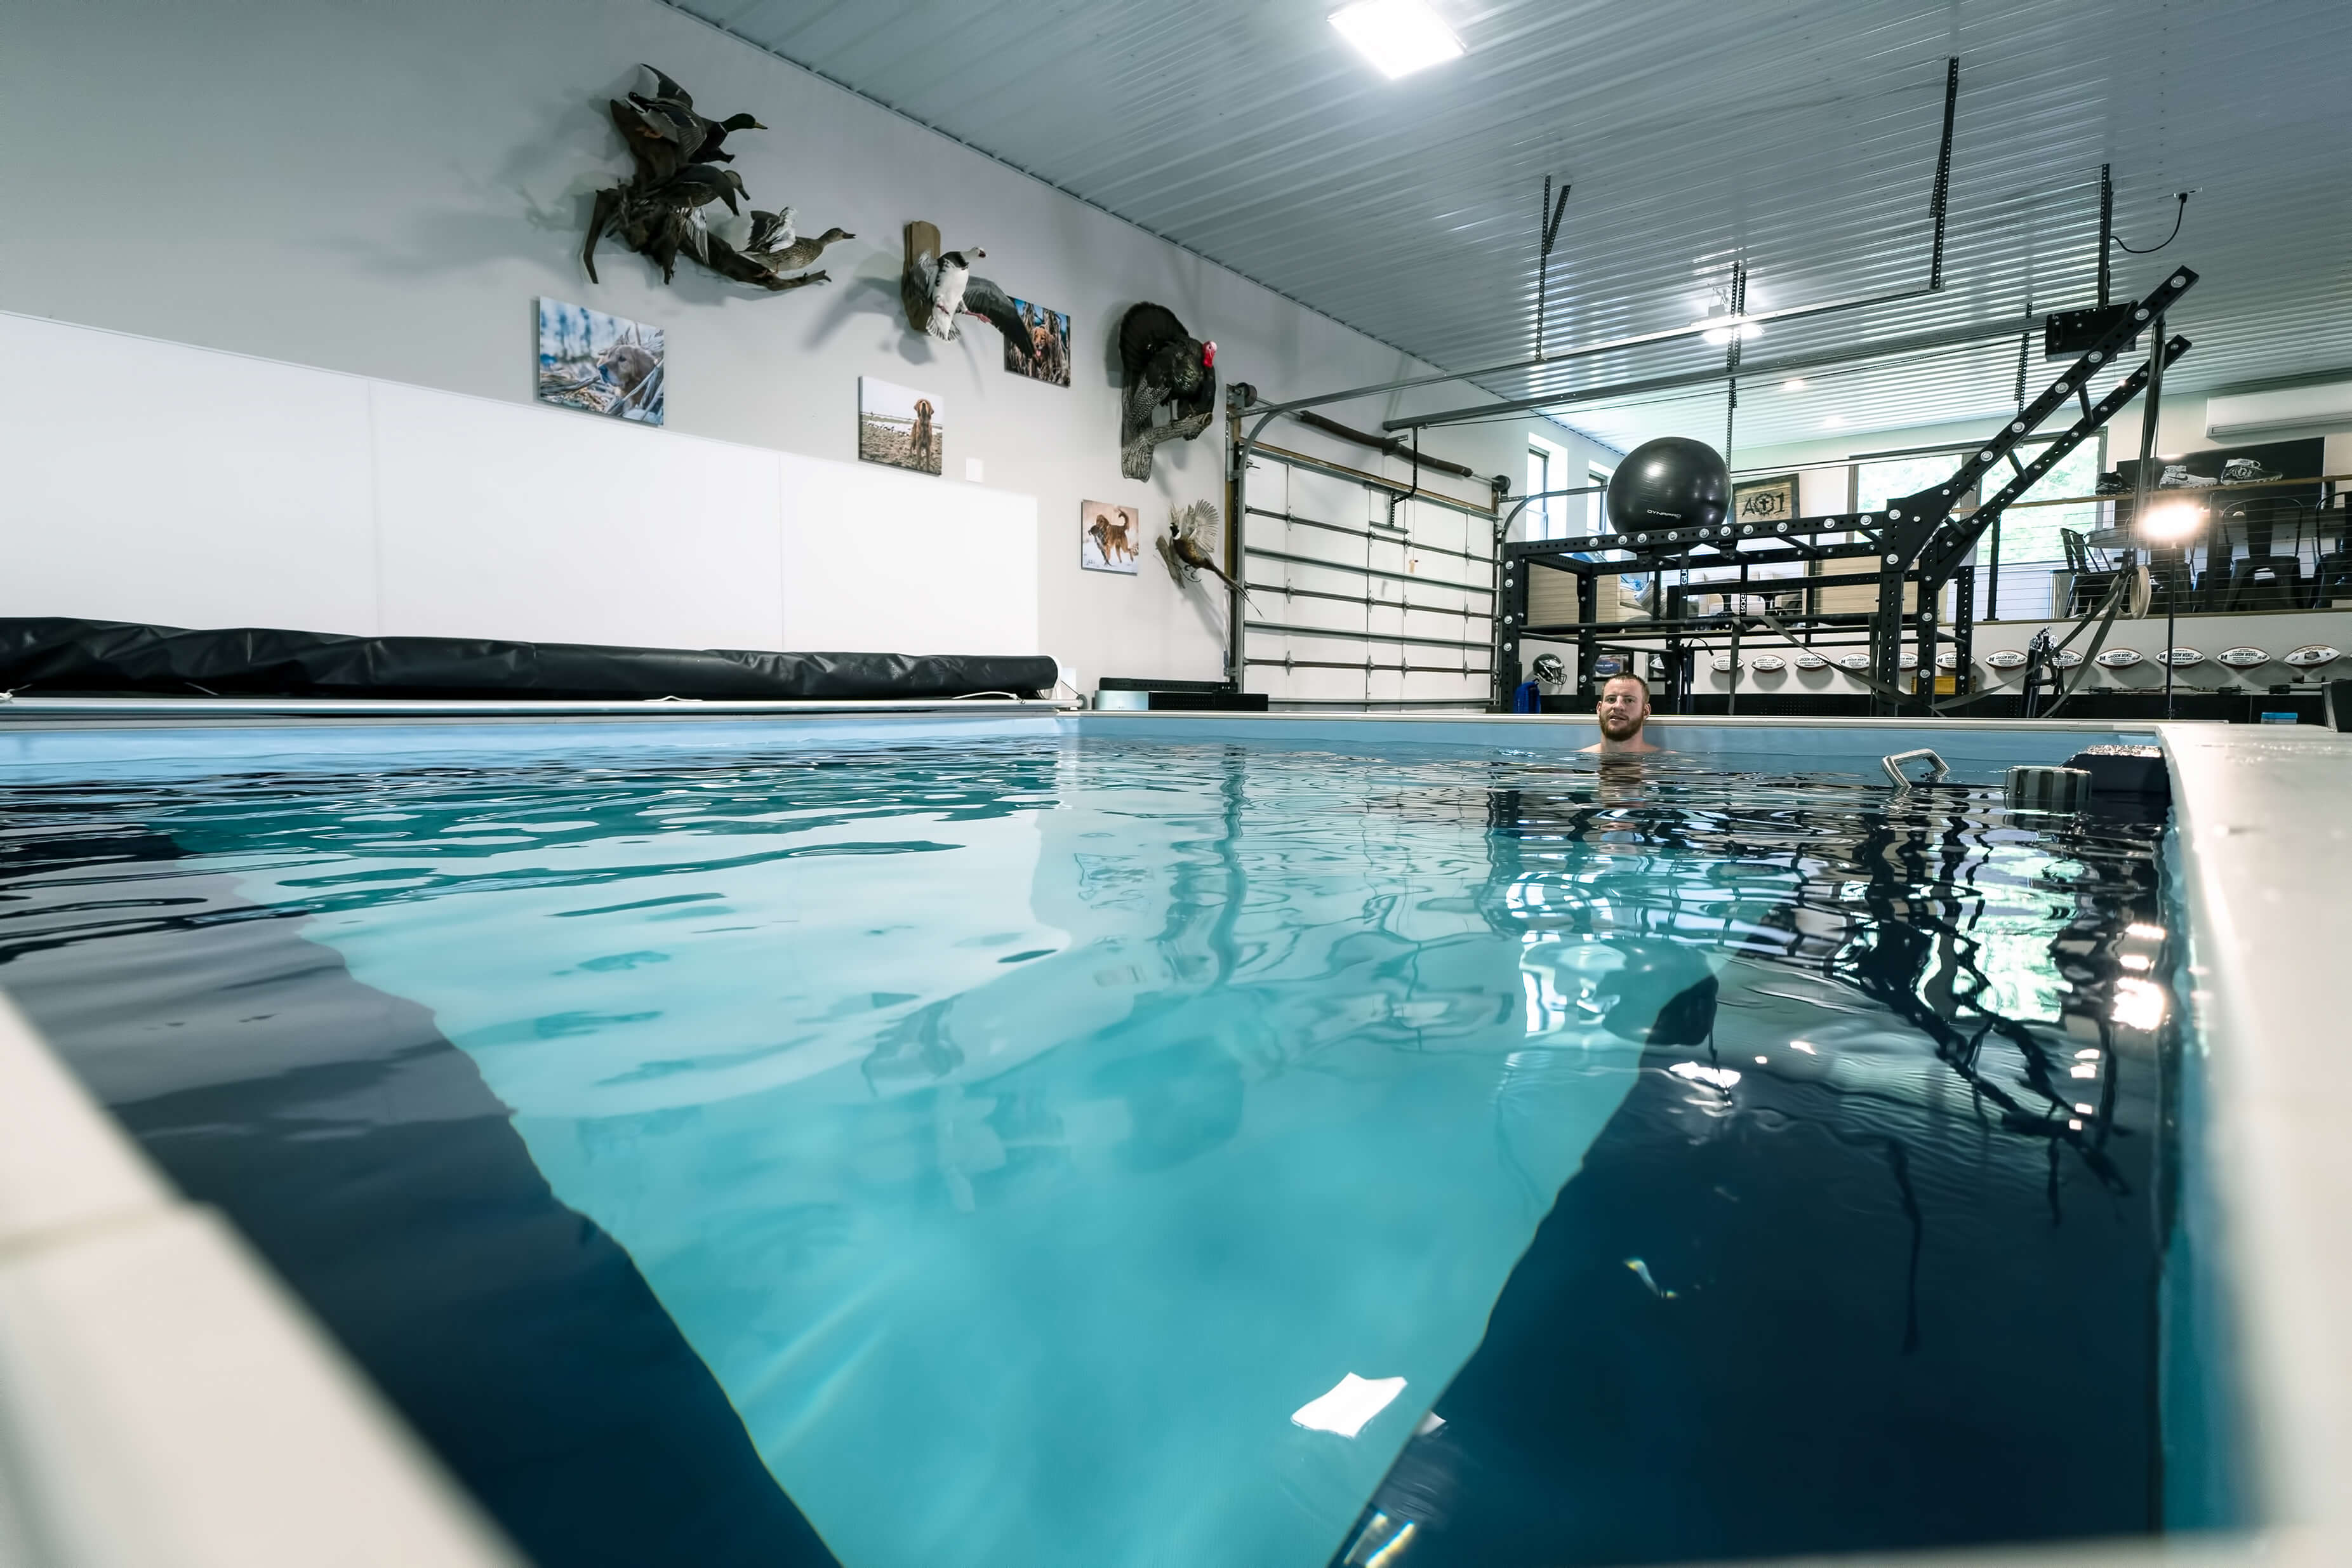 Philadelphia Eagles QB Carson Wents relaxes in the Endless Pools Elite model in his garage